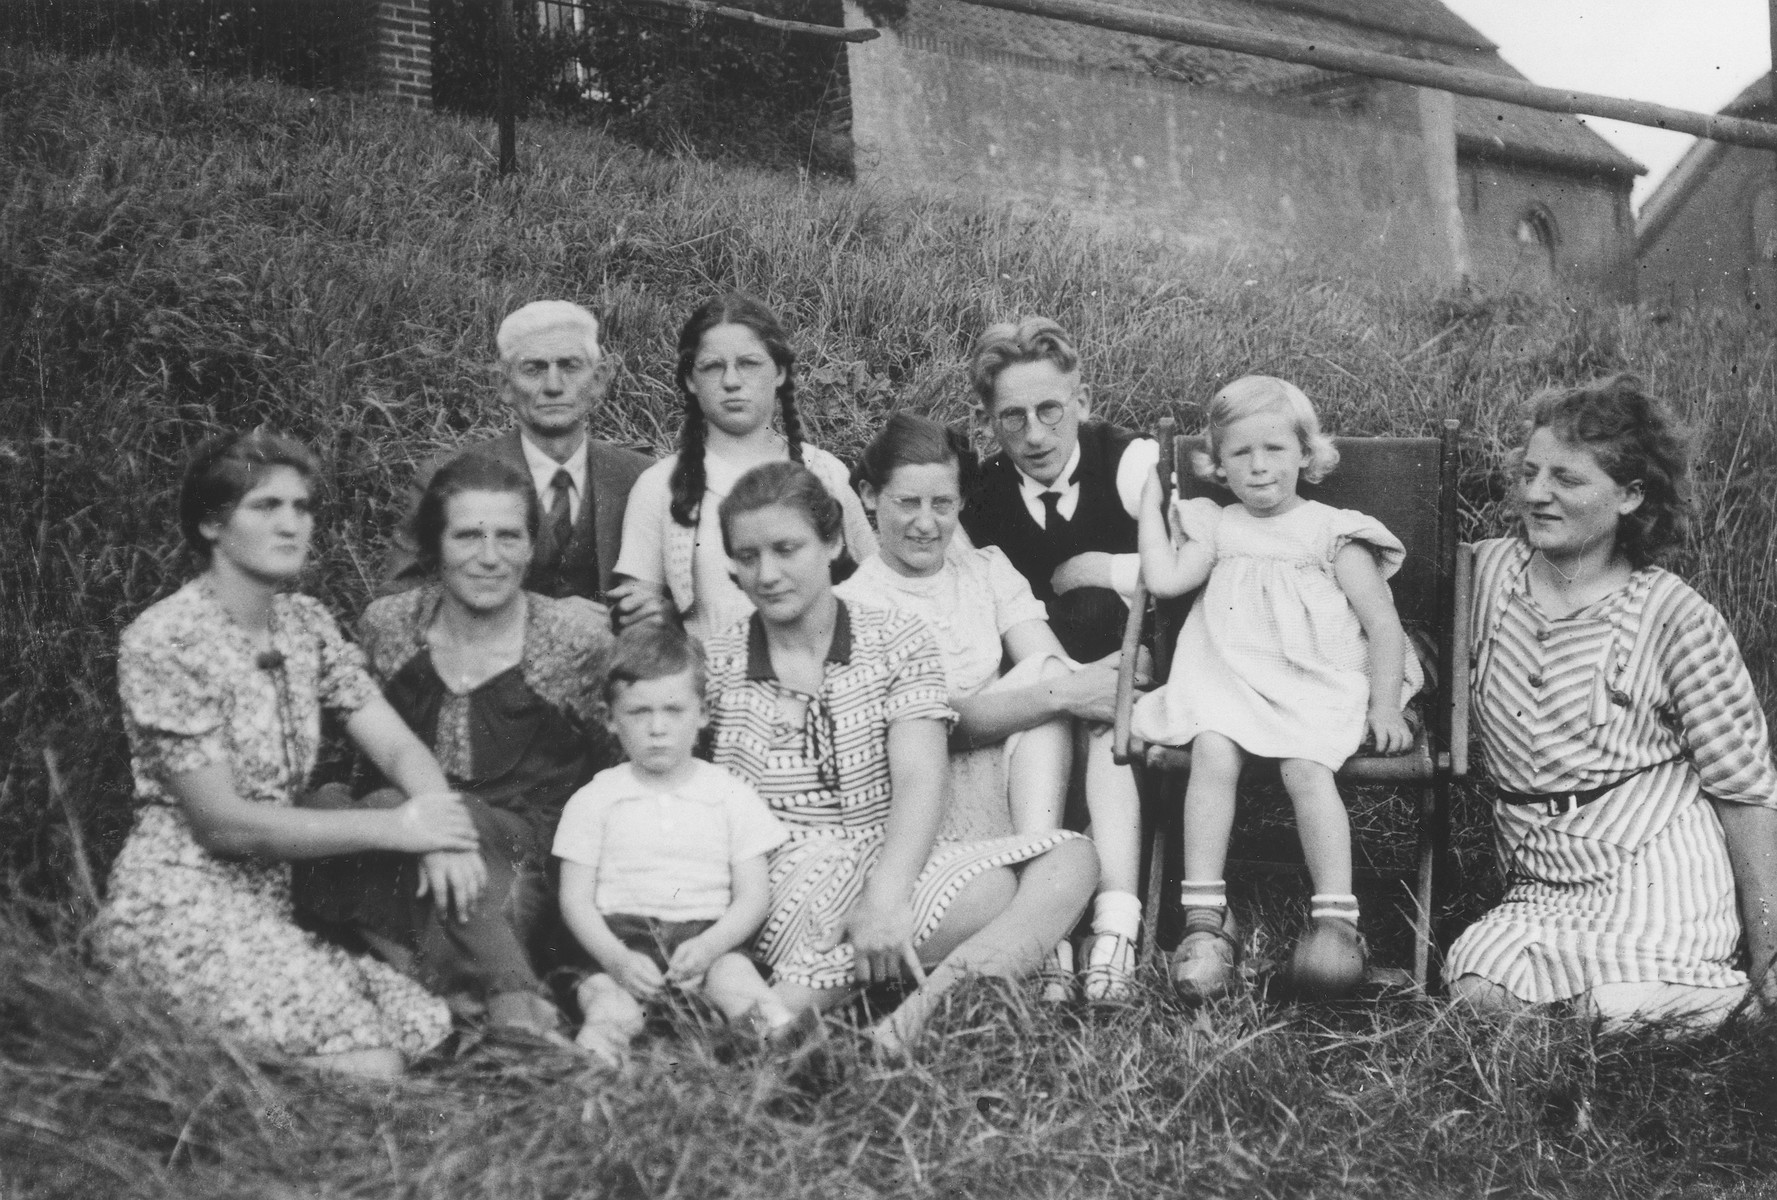 Portrait of the family of Carl Johann and Helene Derksen who hid Doris Bloch during the German occupation of Holland.  Pictured are Carl Johann and Helene Derksen with their children Elly, Miets, Ans, Marta and Leen, their son-in-law, Pim ter Braak, and their grandchildren, Ger and Heleen.  The Derksens were later recognized by Yad Vashem as one of the Righteous among the Nations.